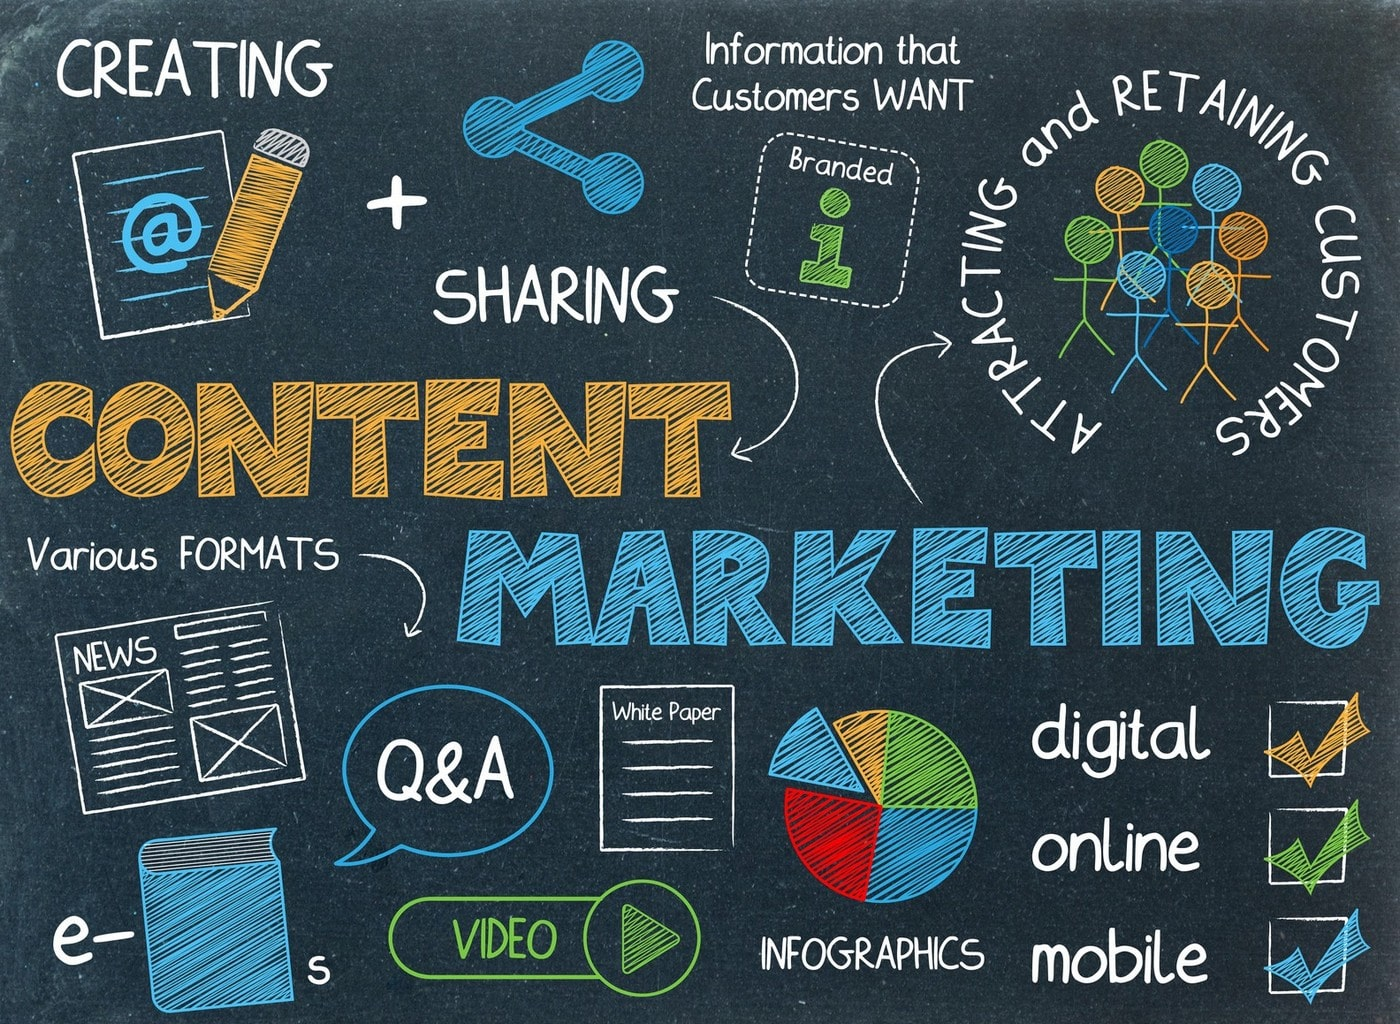 Gianluca Gentile Content Marketing 14 Dicembre 2019